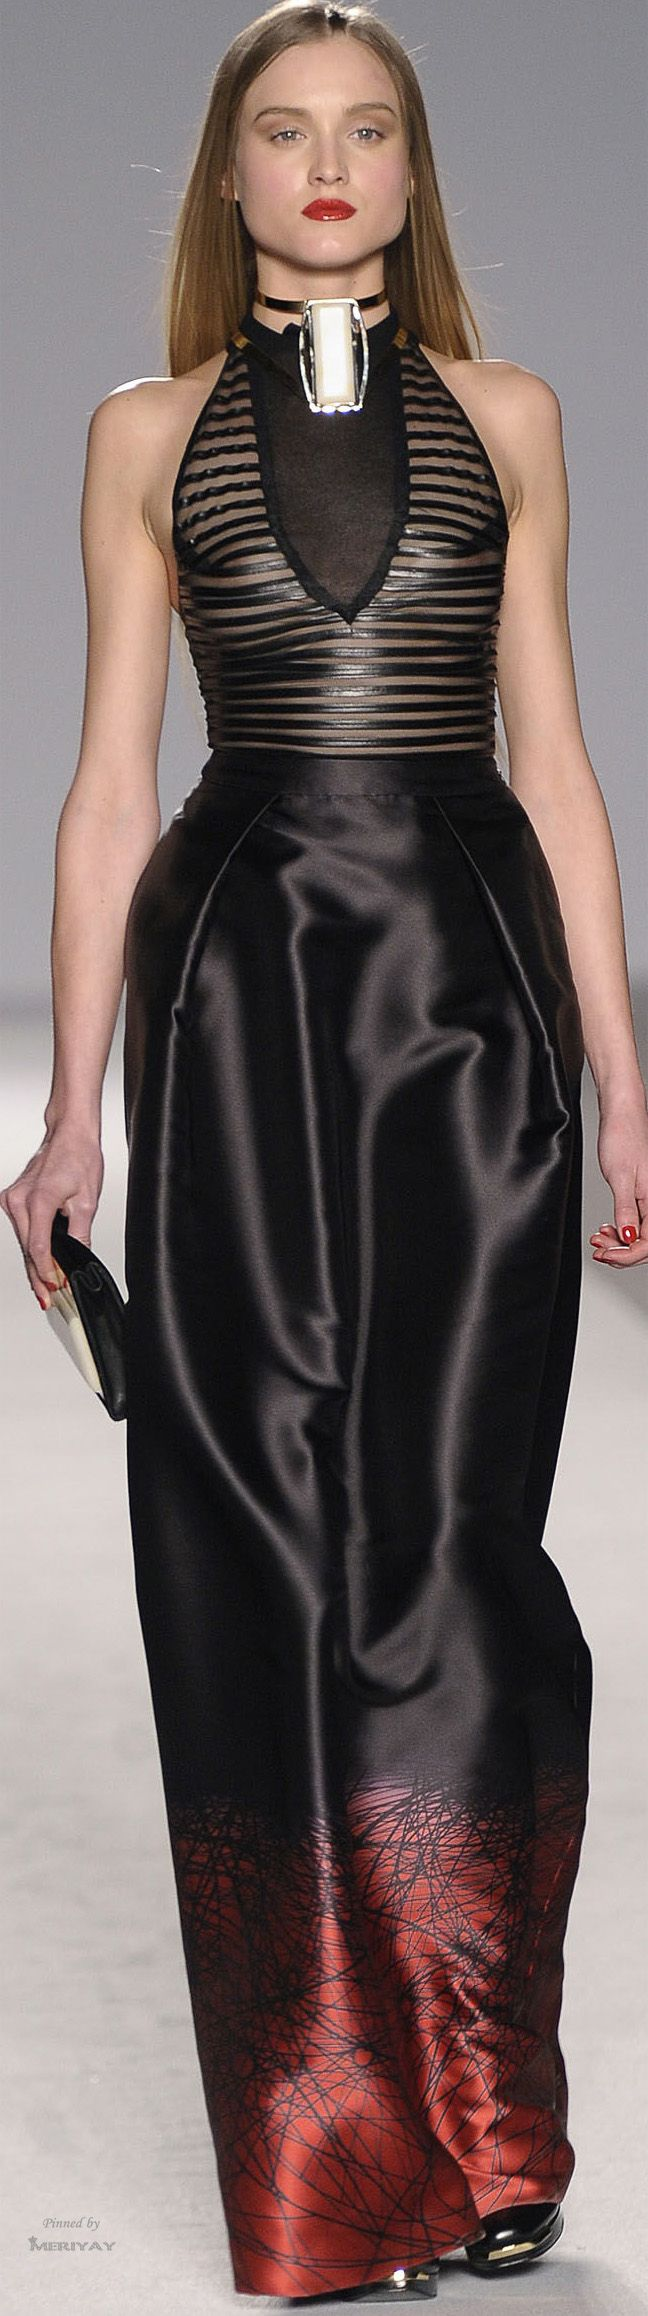 "Aigner Fall-Winter 2014-2015 - The House of Beccaria#- don't care for that white ""thing"" at the neck. It look like a breathing tube implant, but the dress in slammin.'"